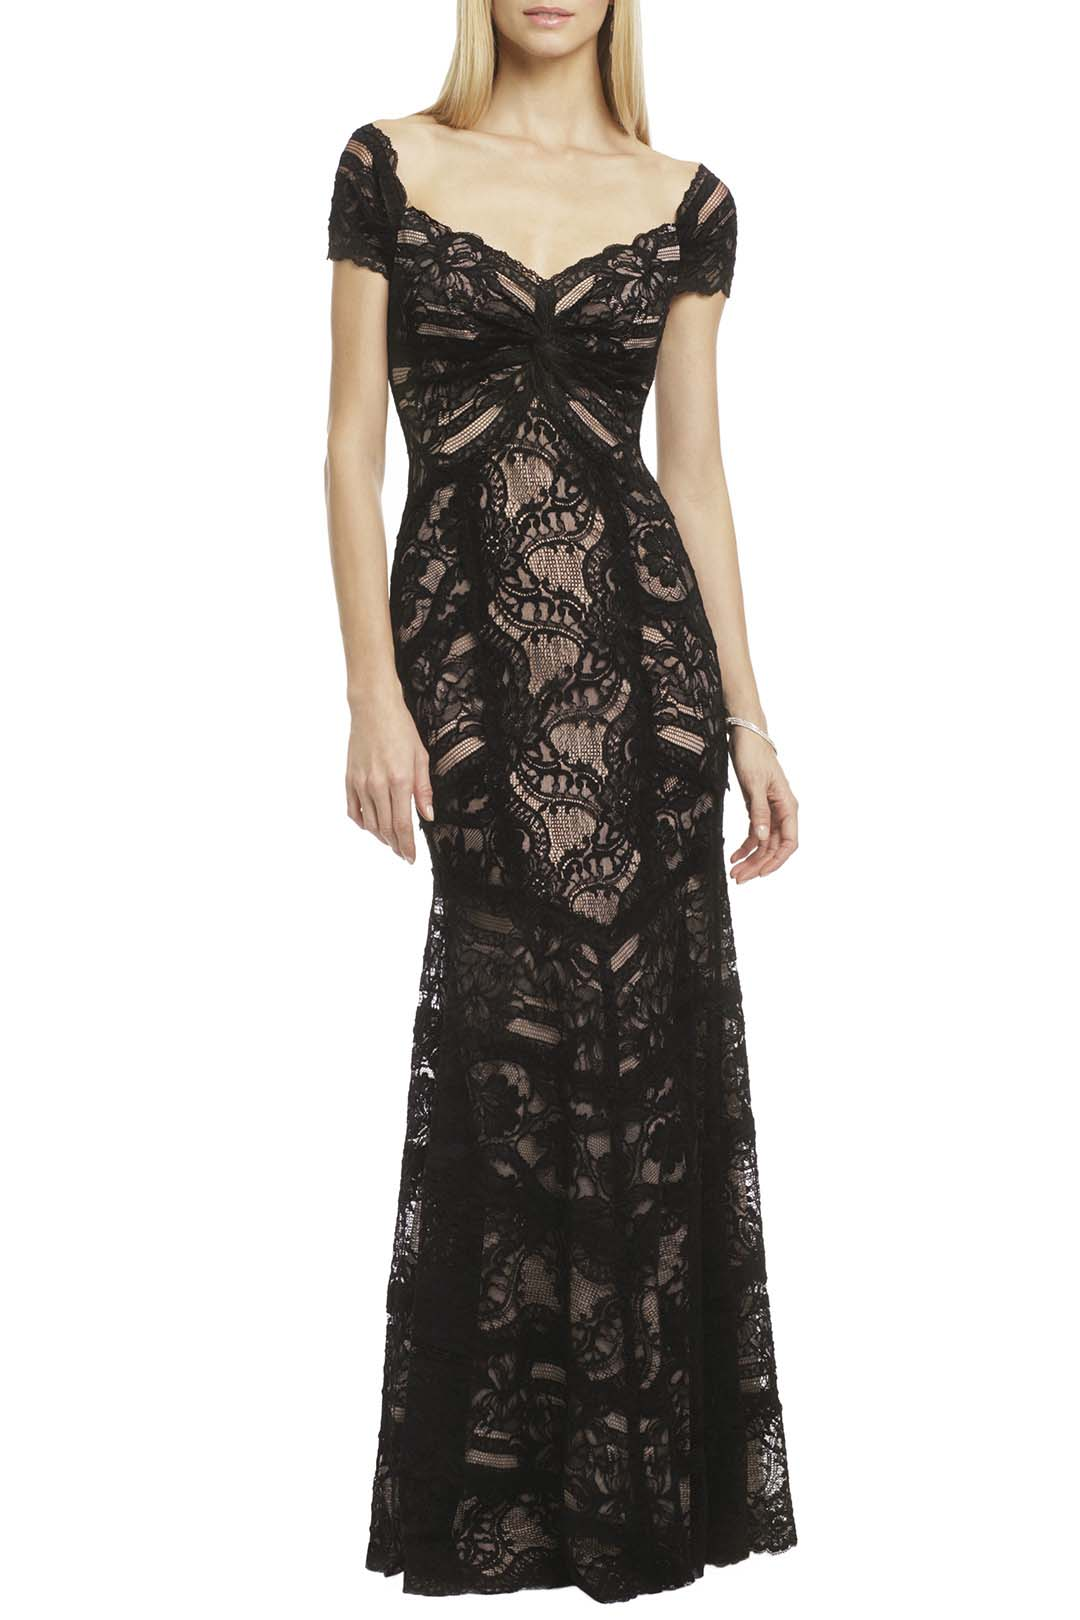 nicole miller tempted by you gown